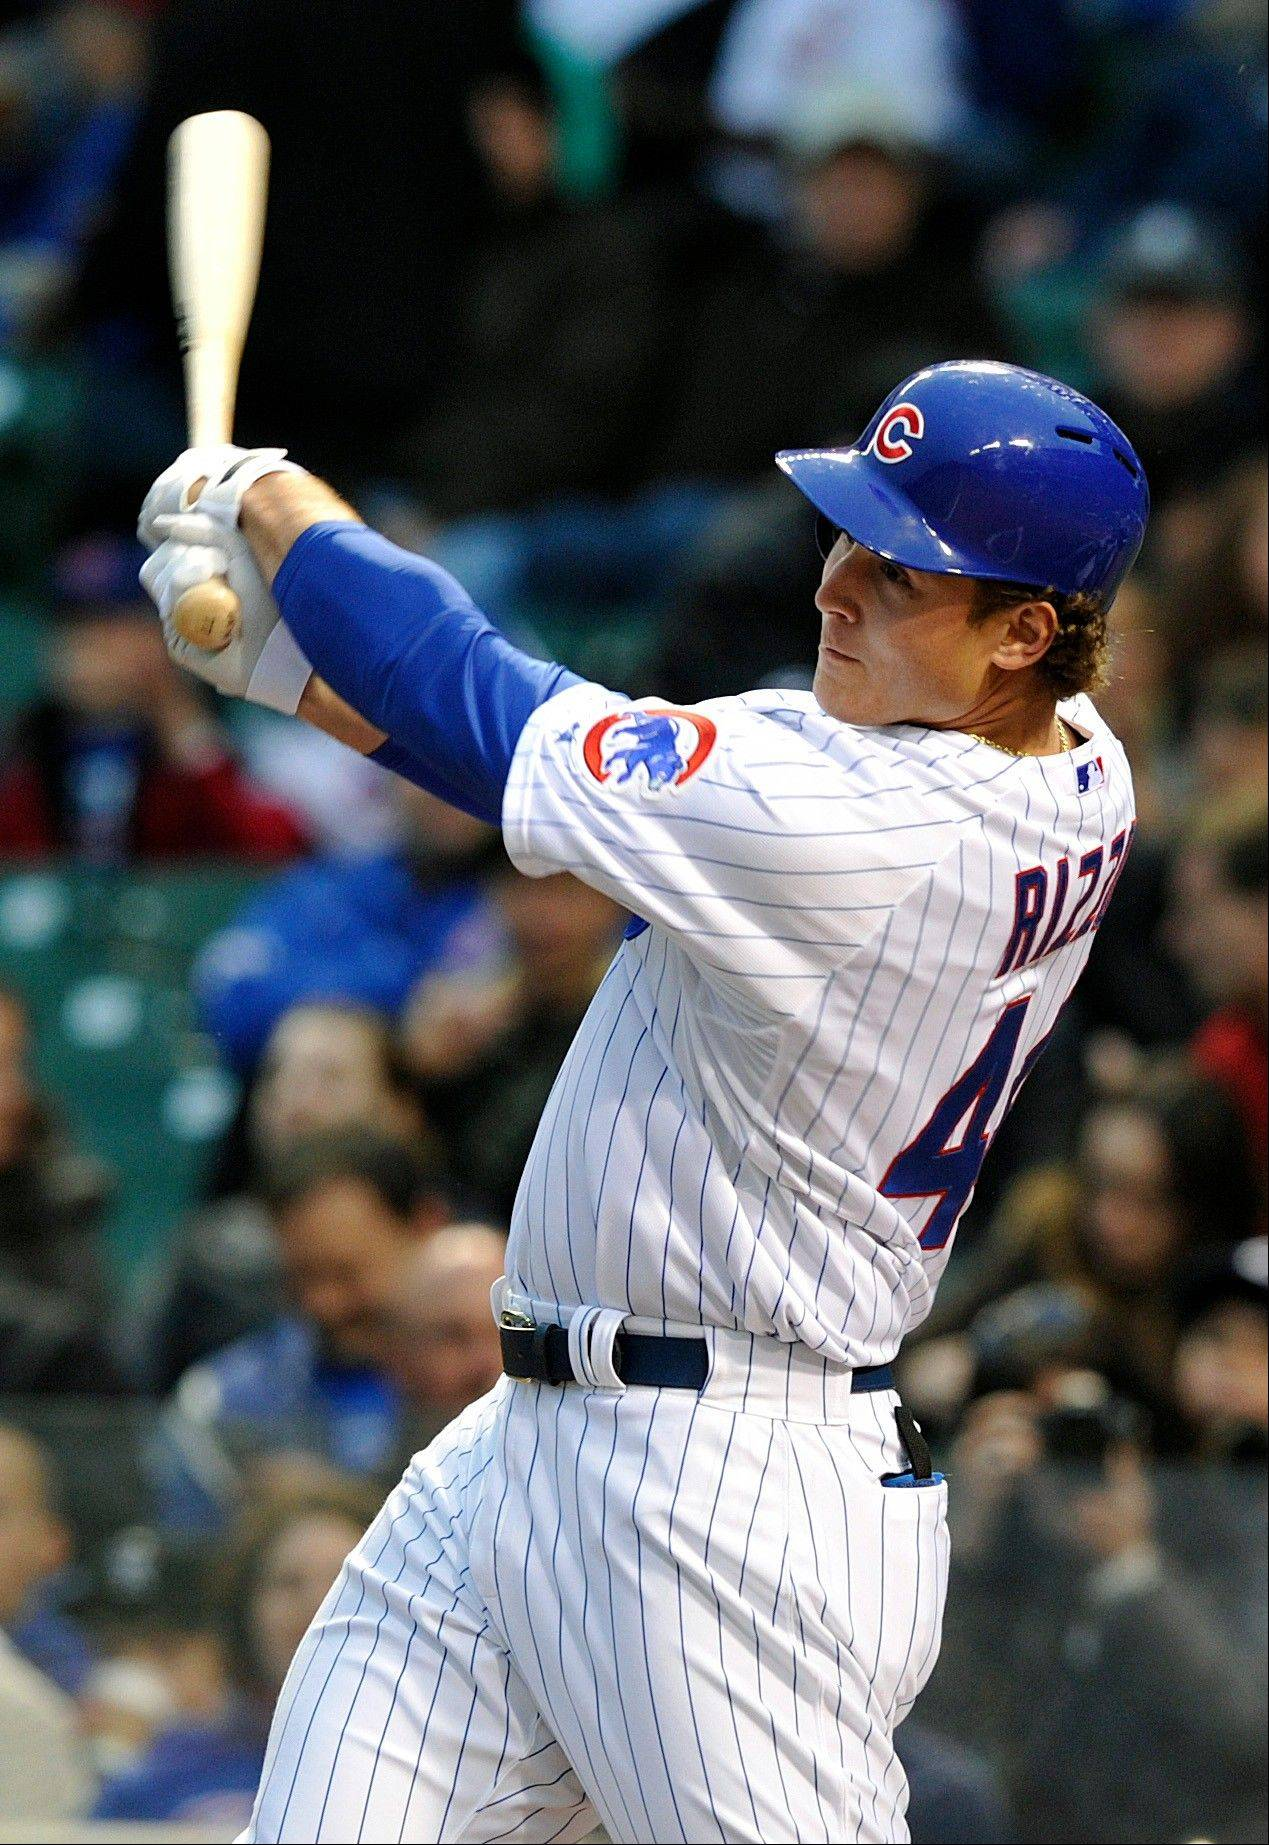 Cubs first baseman Anthony Rizzo has a new seven-year, $41 million deal.